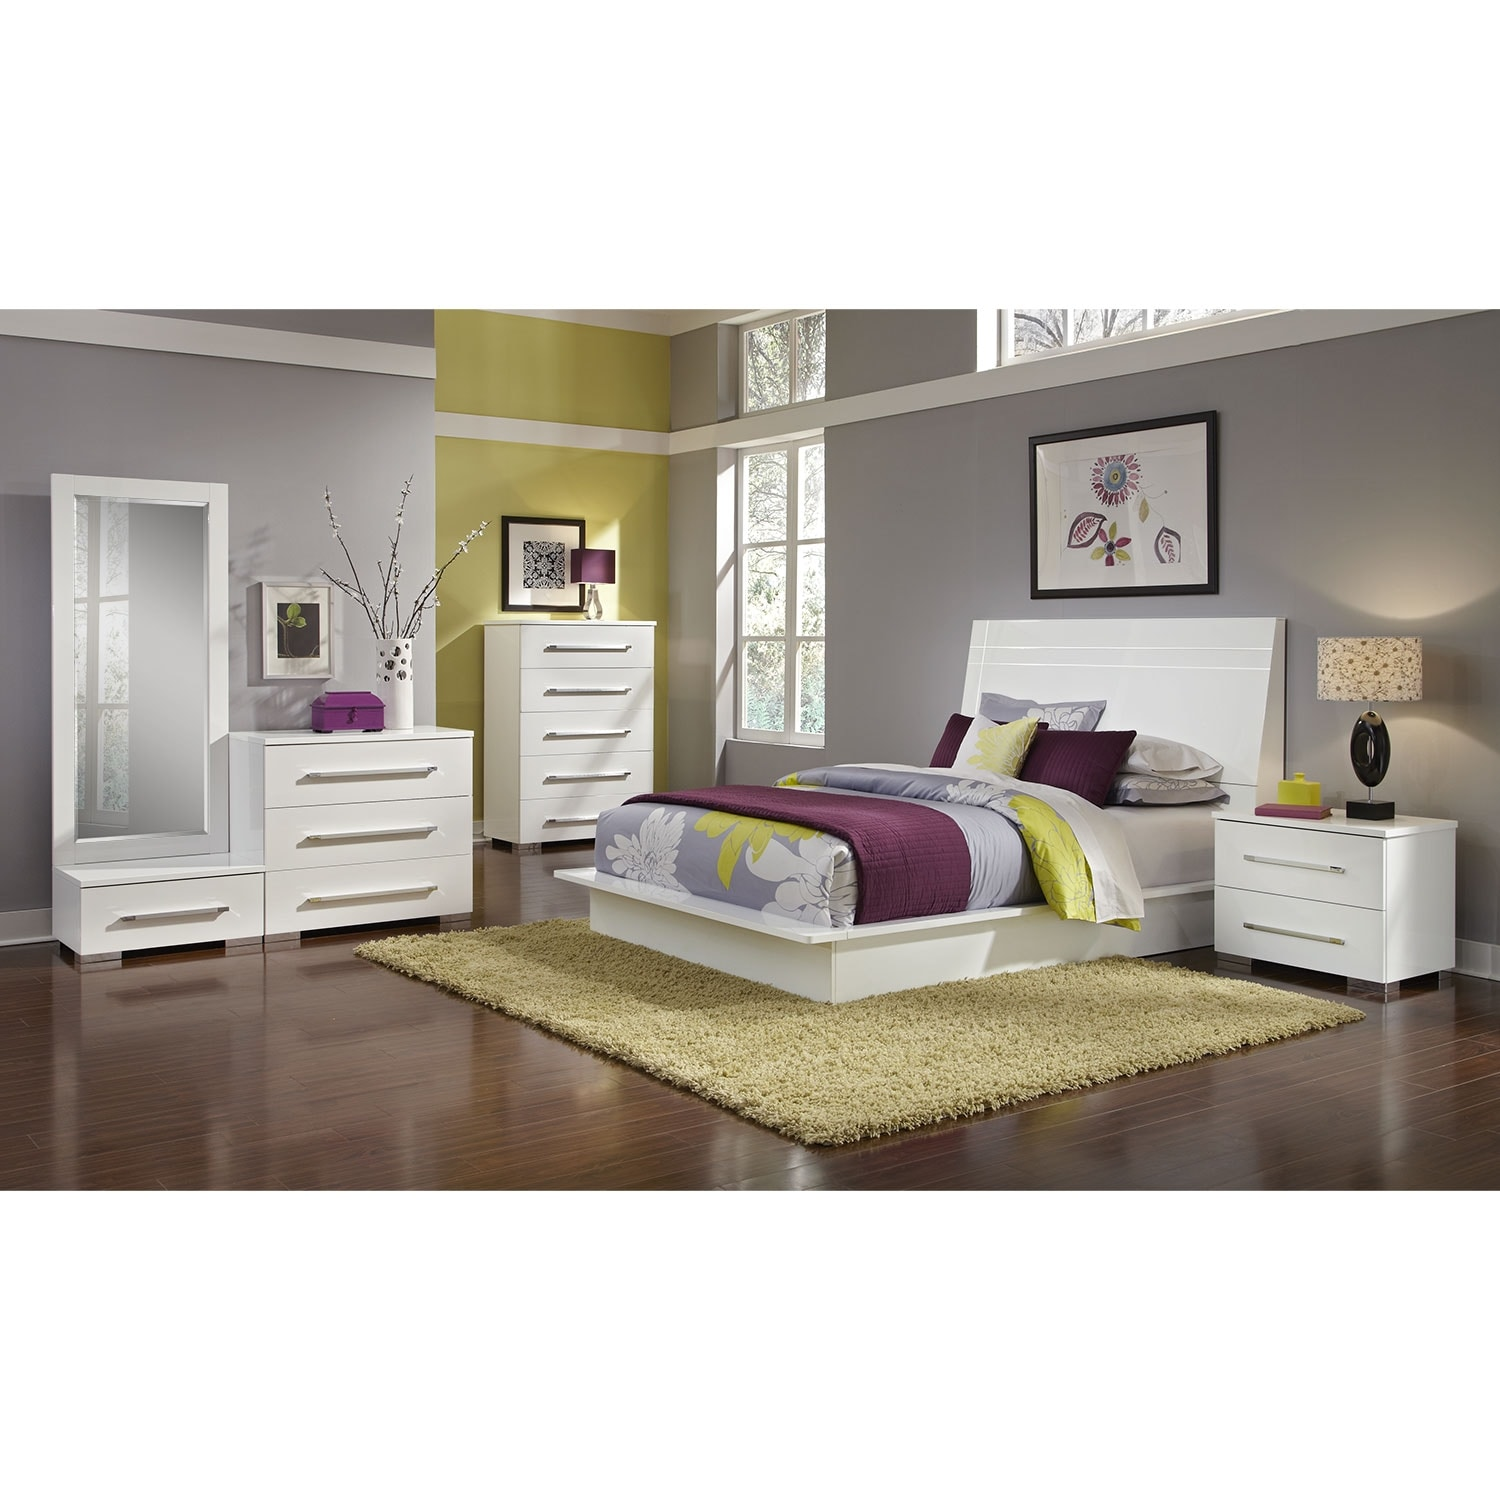 Dimora 7-Piece Queen Panel Bedroom Set - White